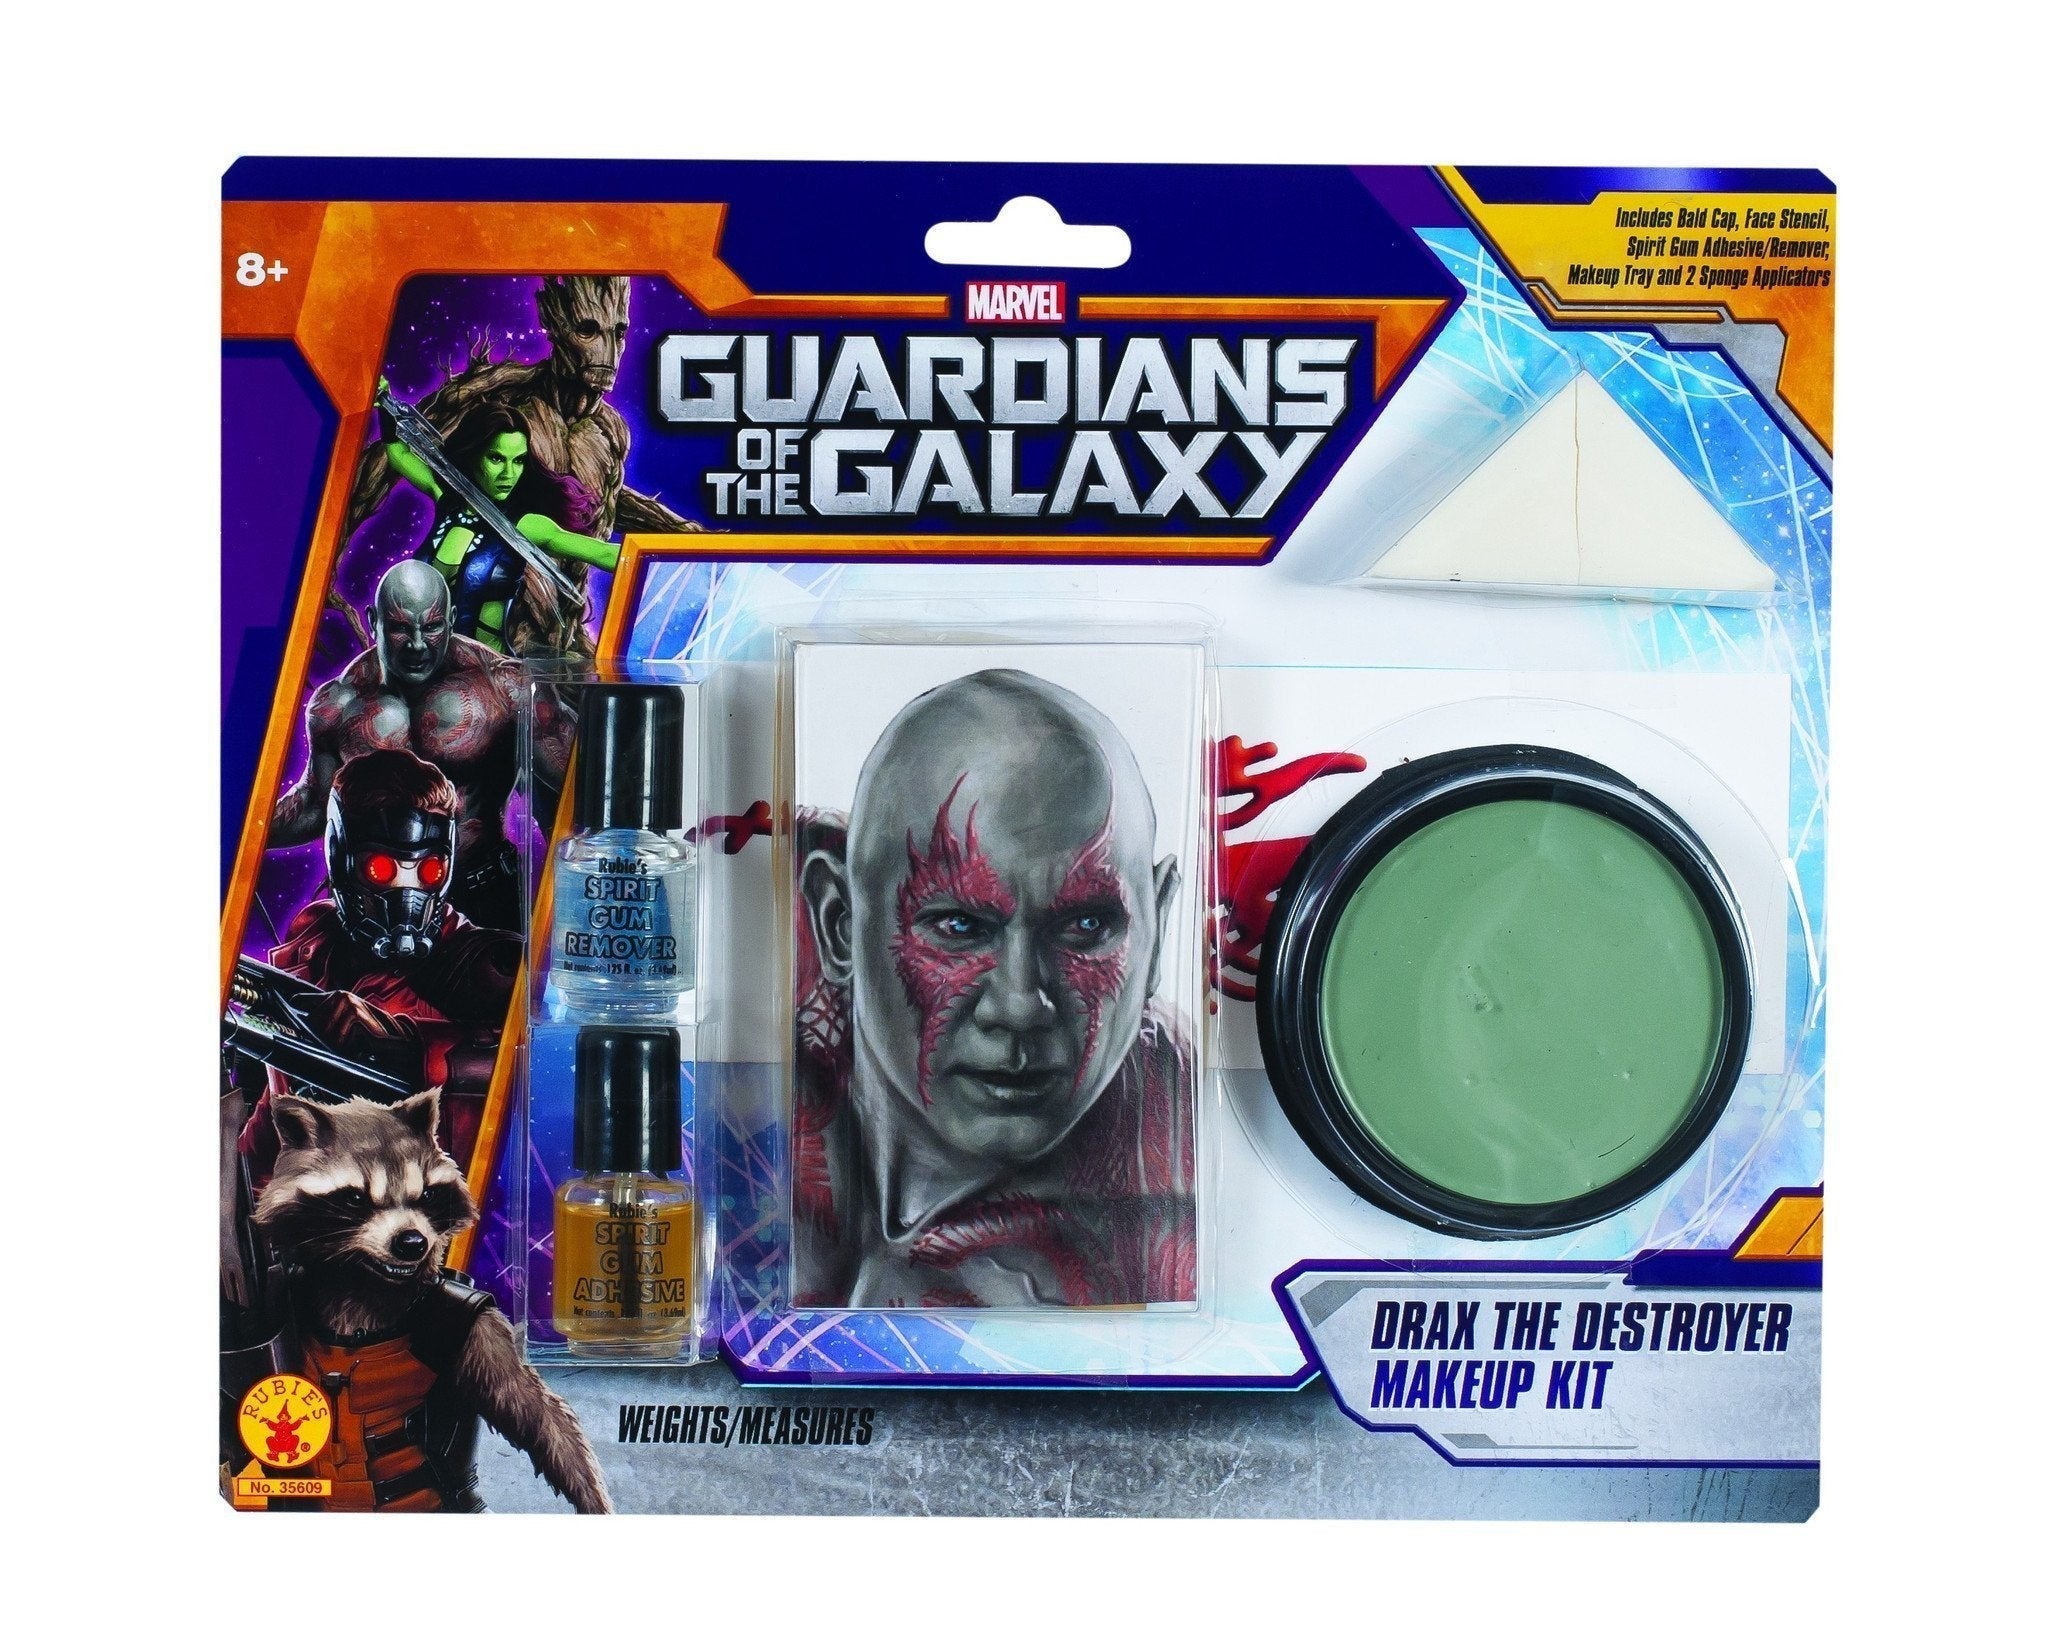 Drax The Destroyer Make Up Kit - Marvel Guardians Of The Galaxy